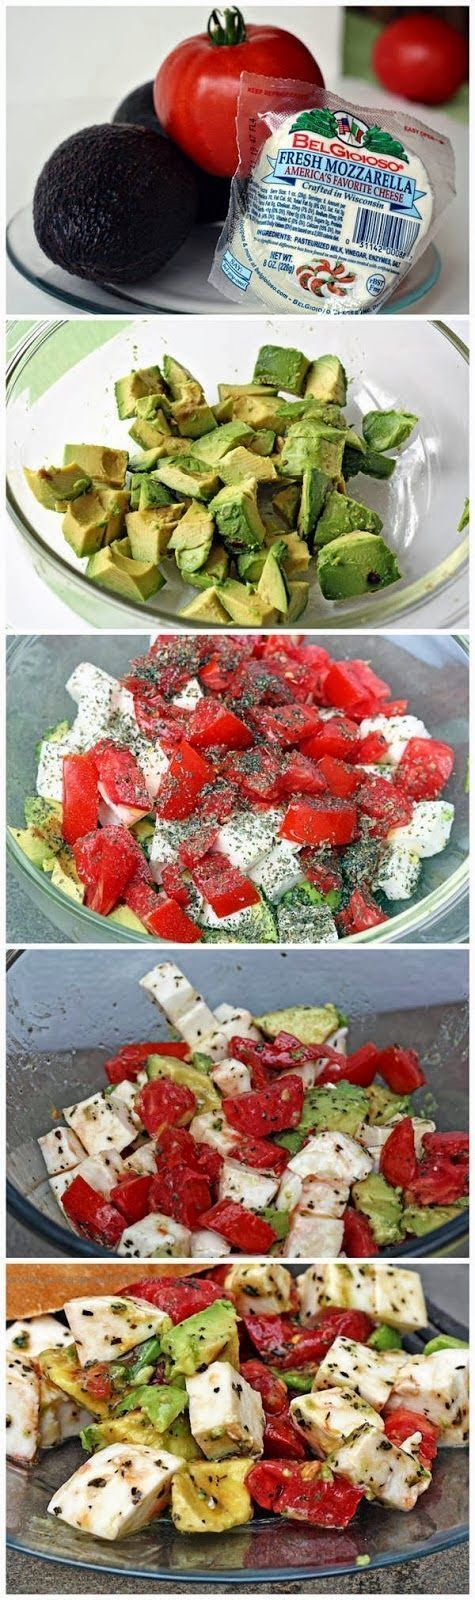 Mozzarella Avocado Tomato Salad #lowcarb super easy and looks delicious! Sharing with Low Carb ♥️ @ facebook.com/...